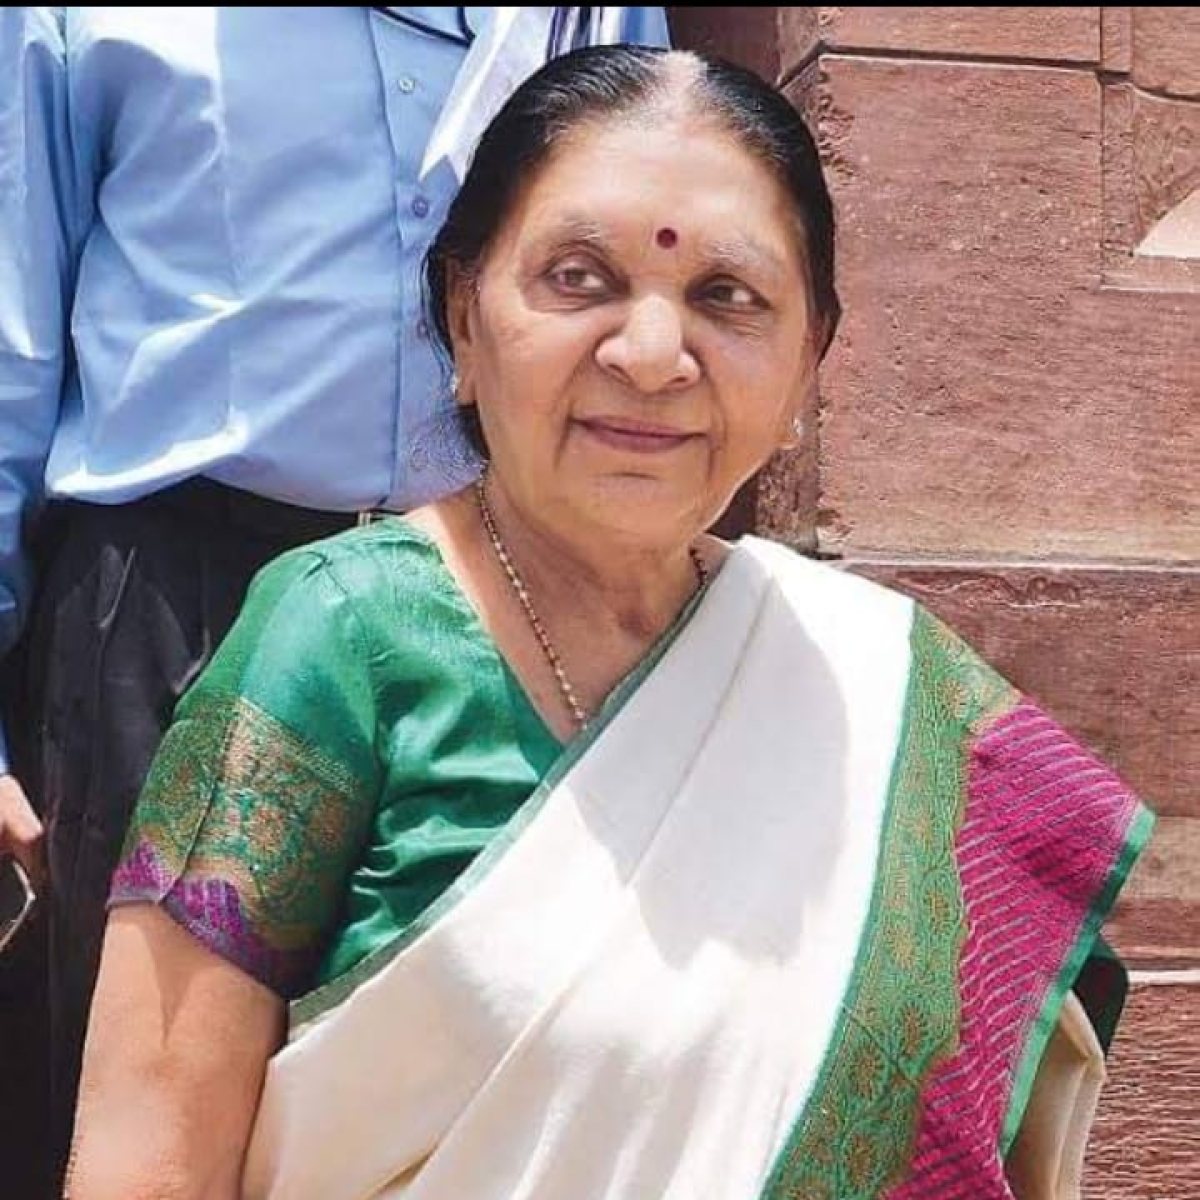 Madhya Pradesh: Create employment opportunities in the private sector, says Guv Anandiben Patel